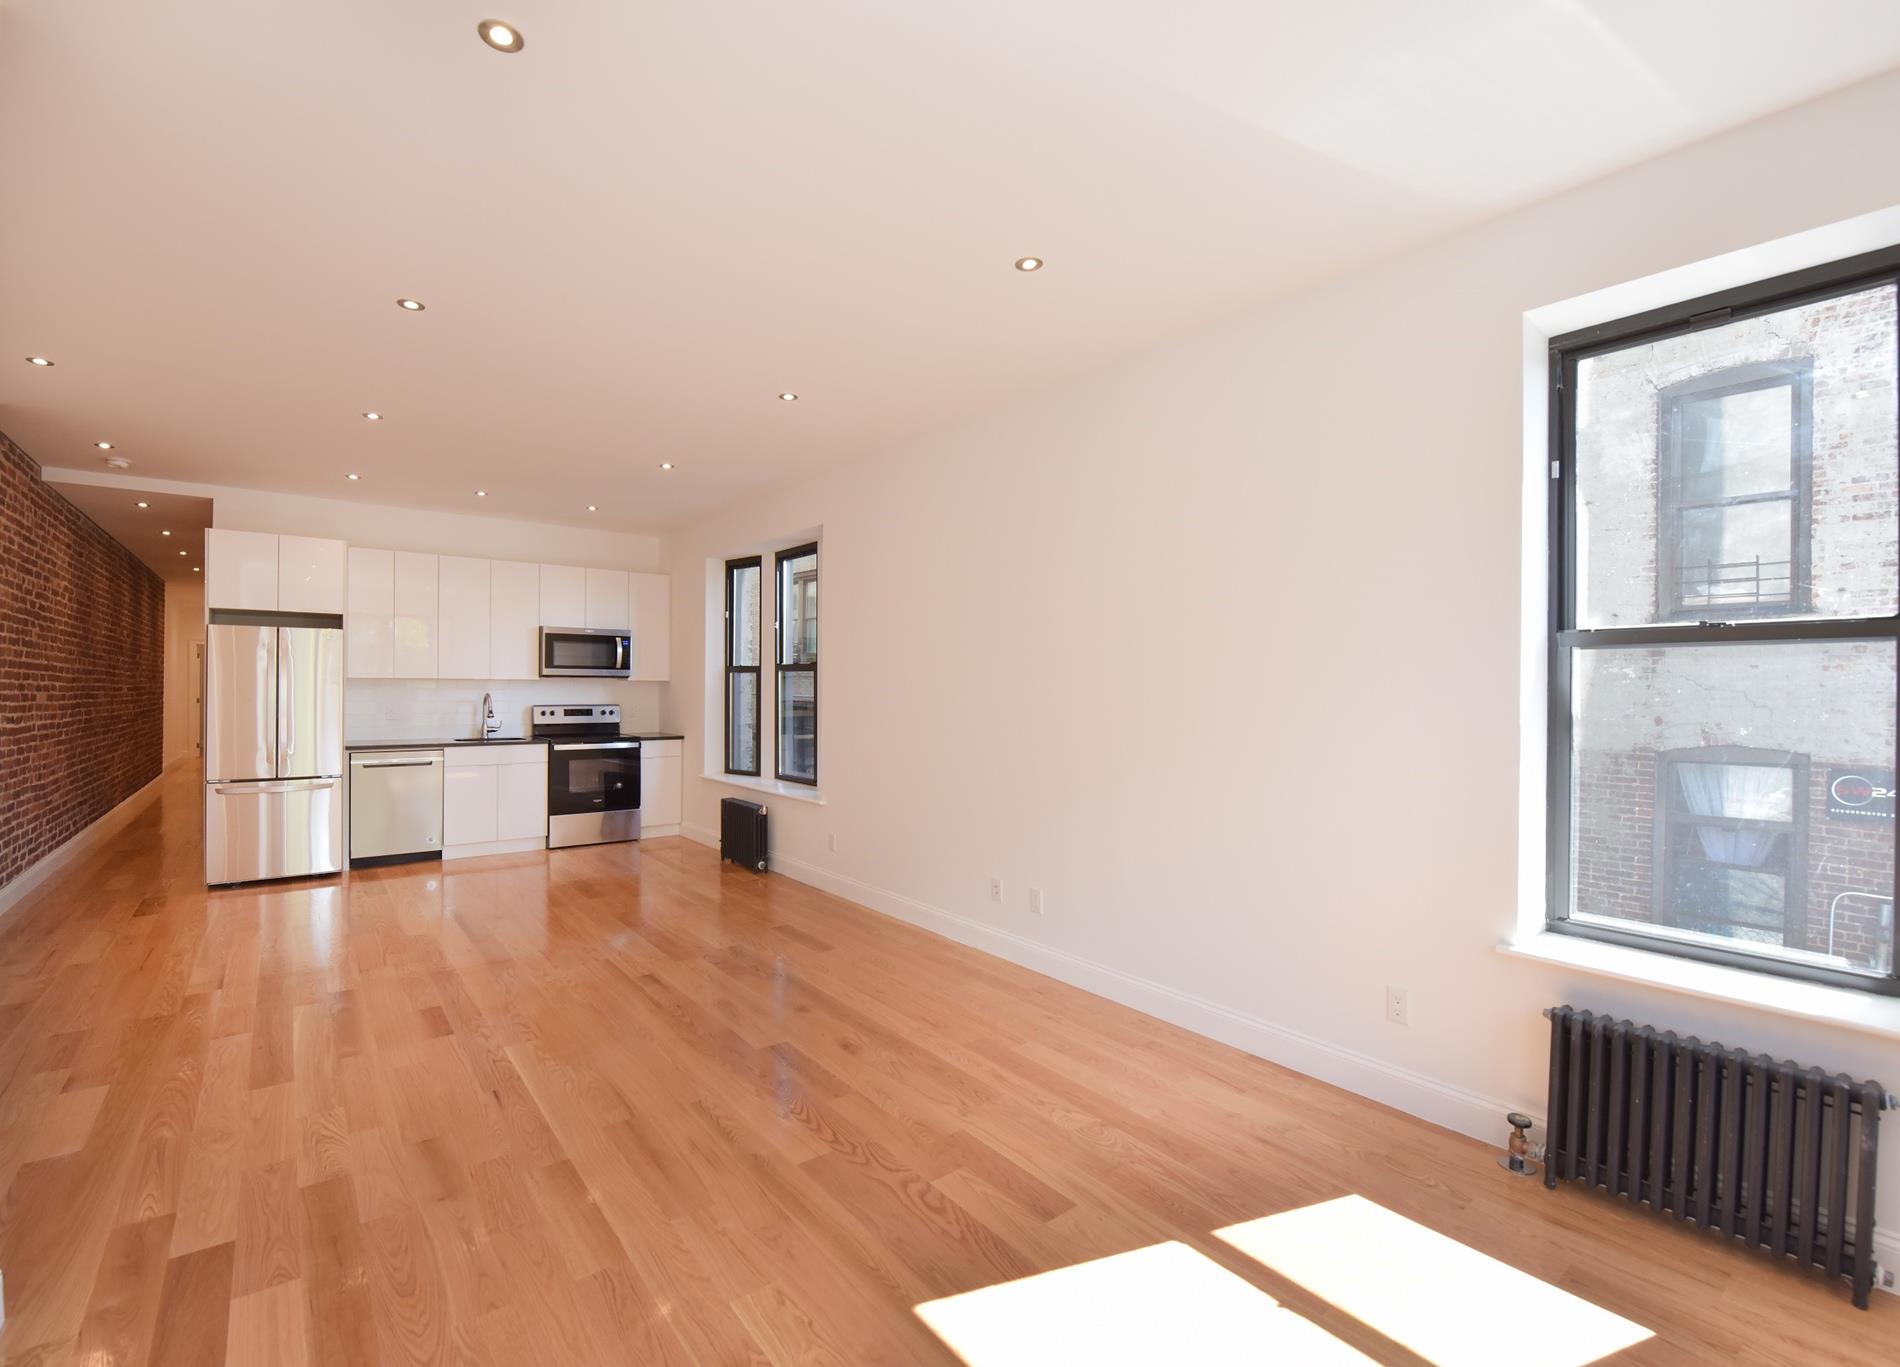 Oversized, Meticulously Gut Renovated 3 Bedroom Sponsor Unit Overlooking Riverside Park. No Board Approval Required, Low Maintenance.Come home to this oversized 3BR apartment at 640 W. 139th Street, aka 618 Riverside Drive. Located on Riverside Drive facing west, this unit offers scale, functionality and protected views of Riverbank State Park. No detail was spared during this complete and meticulous gut renovation with high end condo finishes. This beautiful and spacious apartment seamlessly merges historic prewar detail with stylish and modern design, giving the home a classic downtown loft feel.Upon entering the apartment, you are welcomed by a foyer/mudroom coupled with 10 foot ceilings and recessed lighting throughout. Down a long hallway flanked by walls of exposed brick, you have three bedrooms with an office that offers a layout conducive for good separation and privacy within the home. The master bedroom comes equipped with double-wide closets that can easily accommodate a king-sized bed and furniture set. As you traverse the hall, to the left you have a flexible layout which is currently comprised of a full bathroom, home office, and two additional full-size bedrooms. NOTE: There are no load-bearing walls from north to south in the unit, so possible reconfiguration of the space is fully achievable and the office can seamlessly be converted into a second bathroom. At the end of the hallway, you are greeted by a sprawling 35 x 13'7' loft-like living/dining area that faces west onto Riverside Park. Off the living room you will find an open chef's kitchen fully equipped with new stainless steel appliances. The living room benefits from southern and western exposure offering a constant stream of natural light making the space bright, airy, open and perfect for entertaining.  640 West 139th offers a tremendous opportunity with great upside and makes sense for users or investors. The building permits and offers the following: No Board approval, an unlimited suble